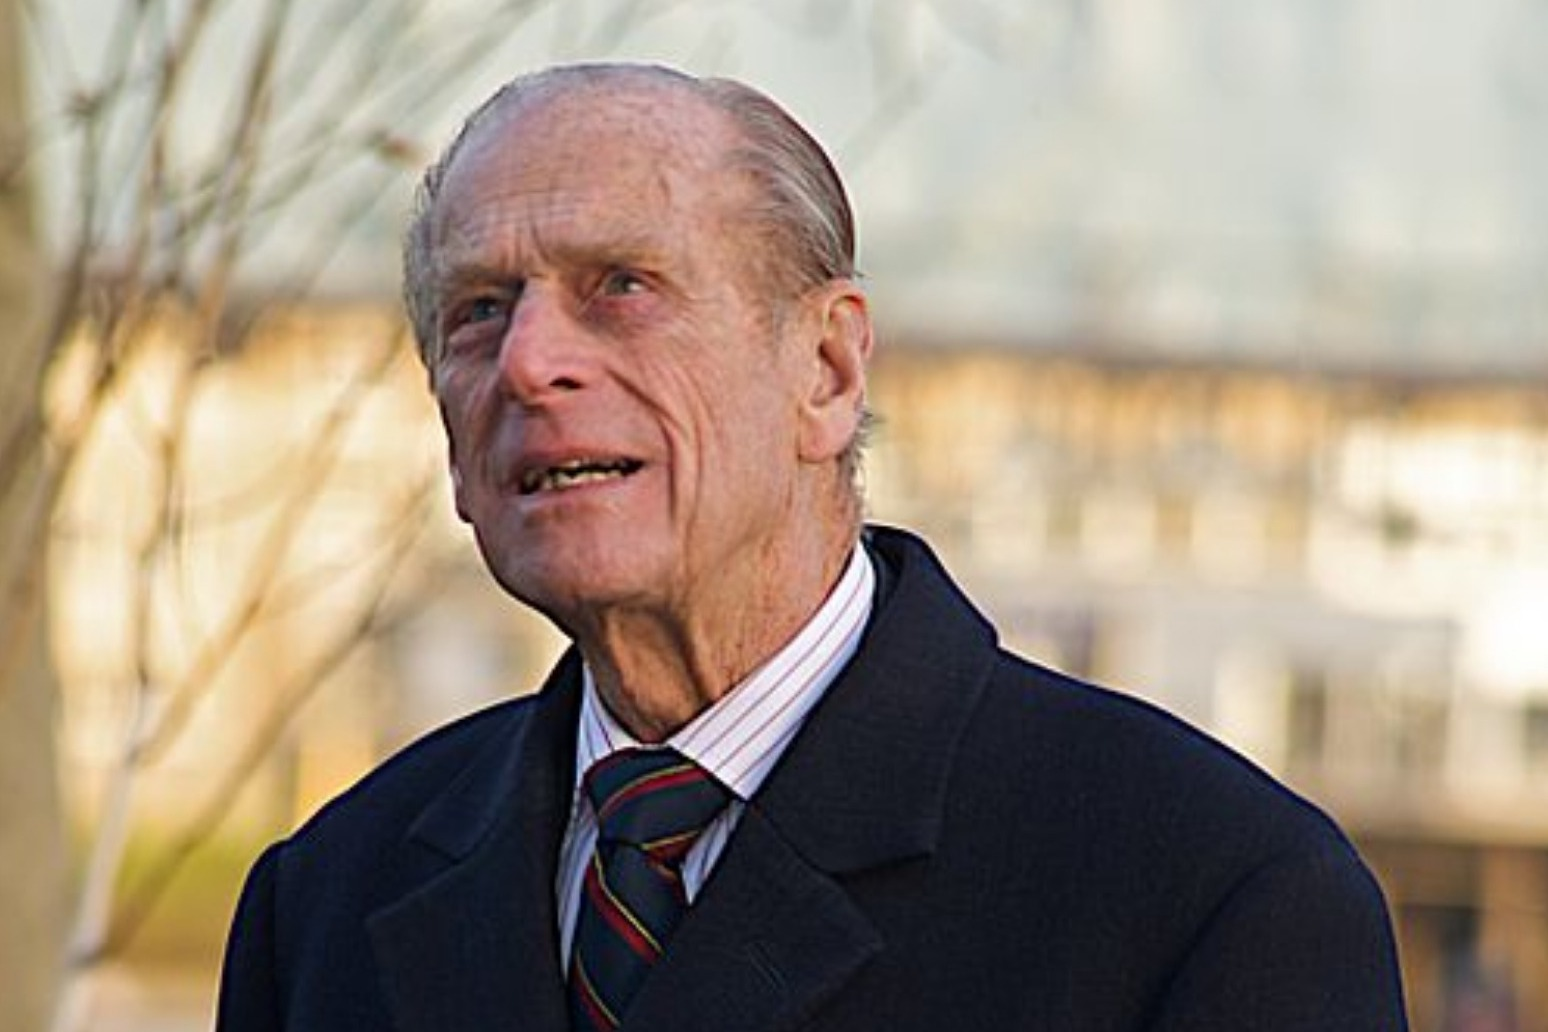 Prince Philip gives up driving licence after crash